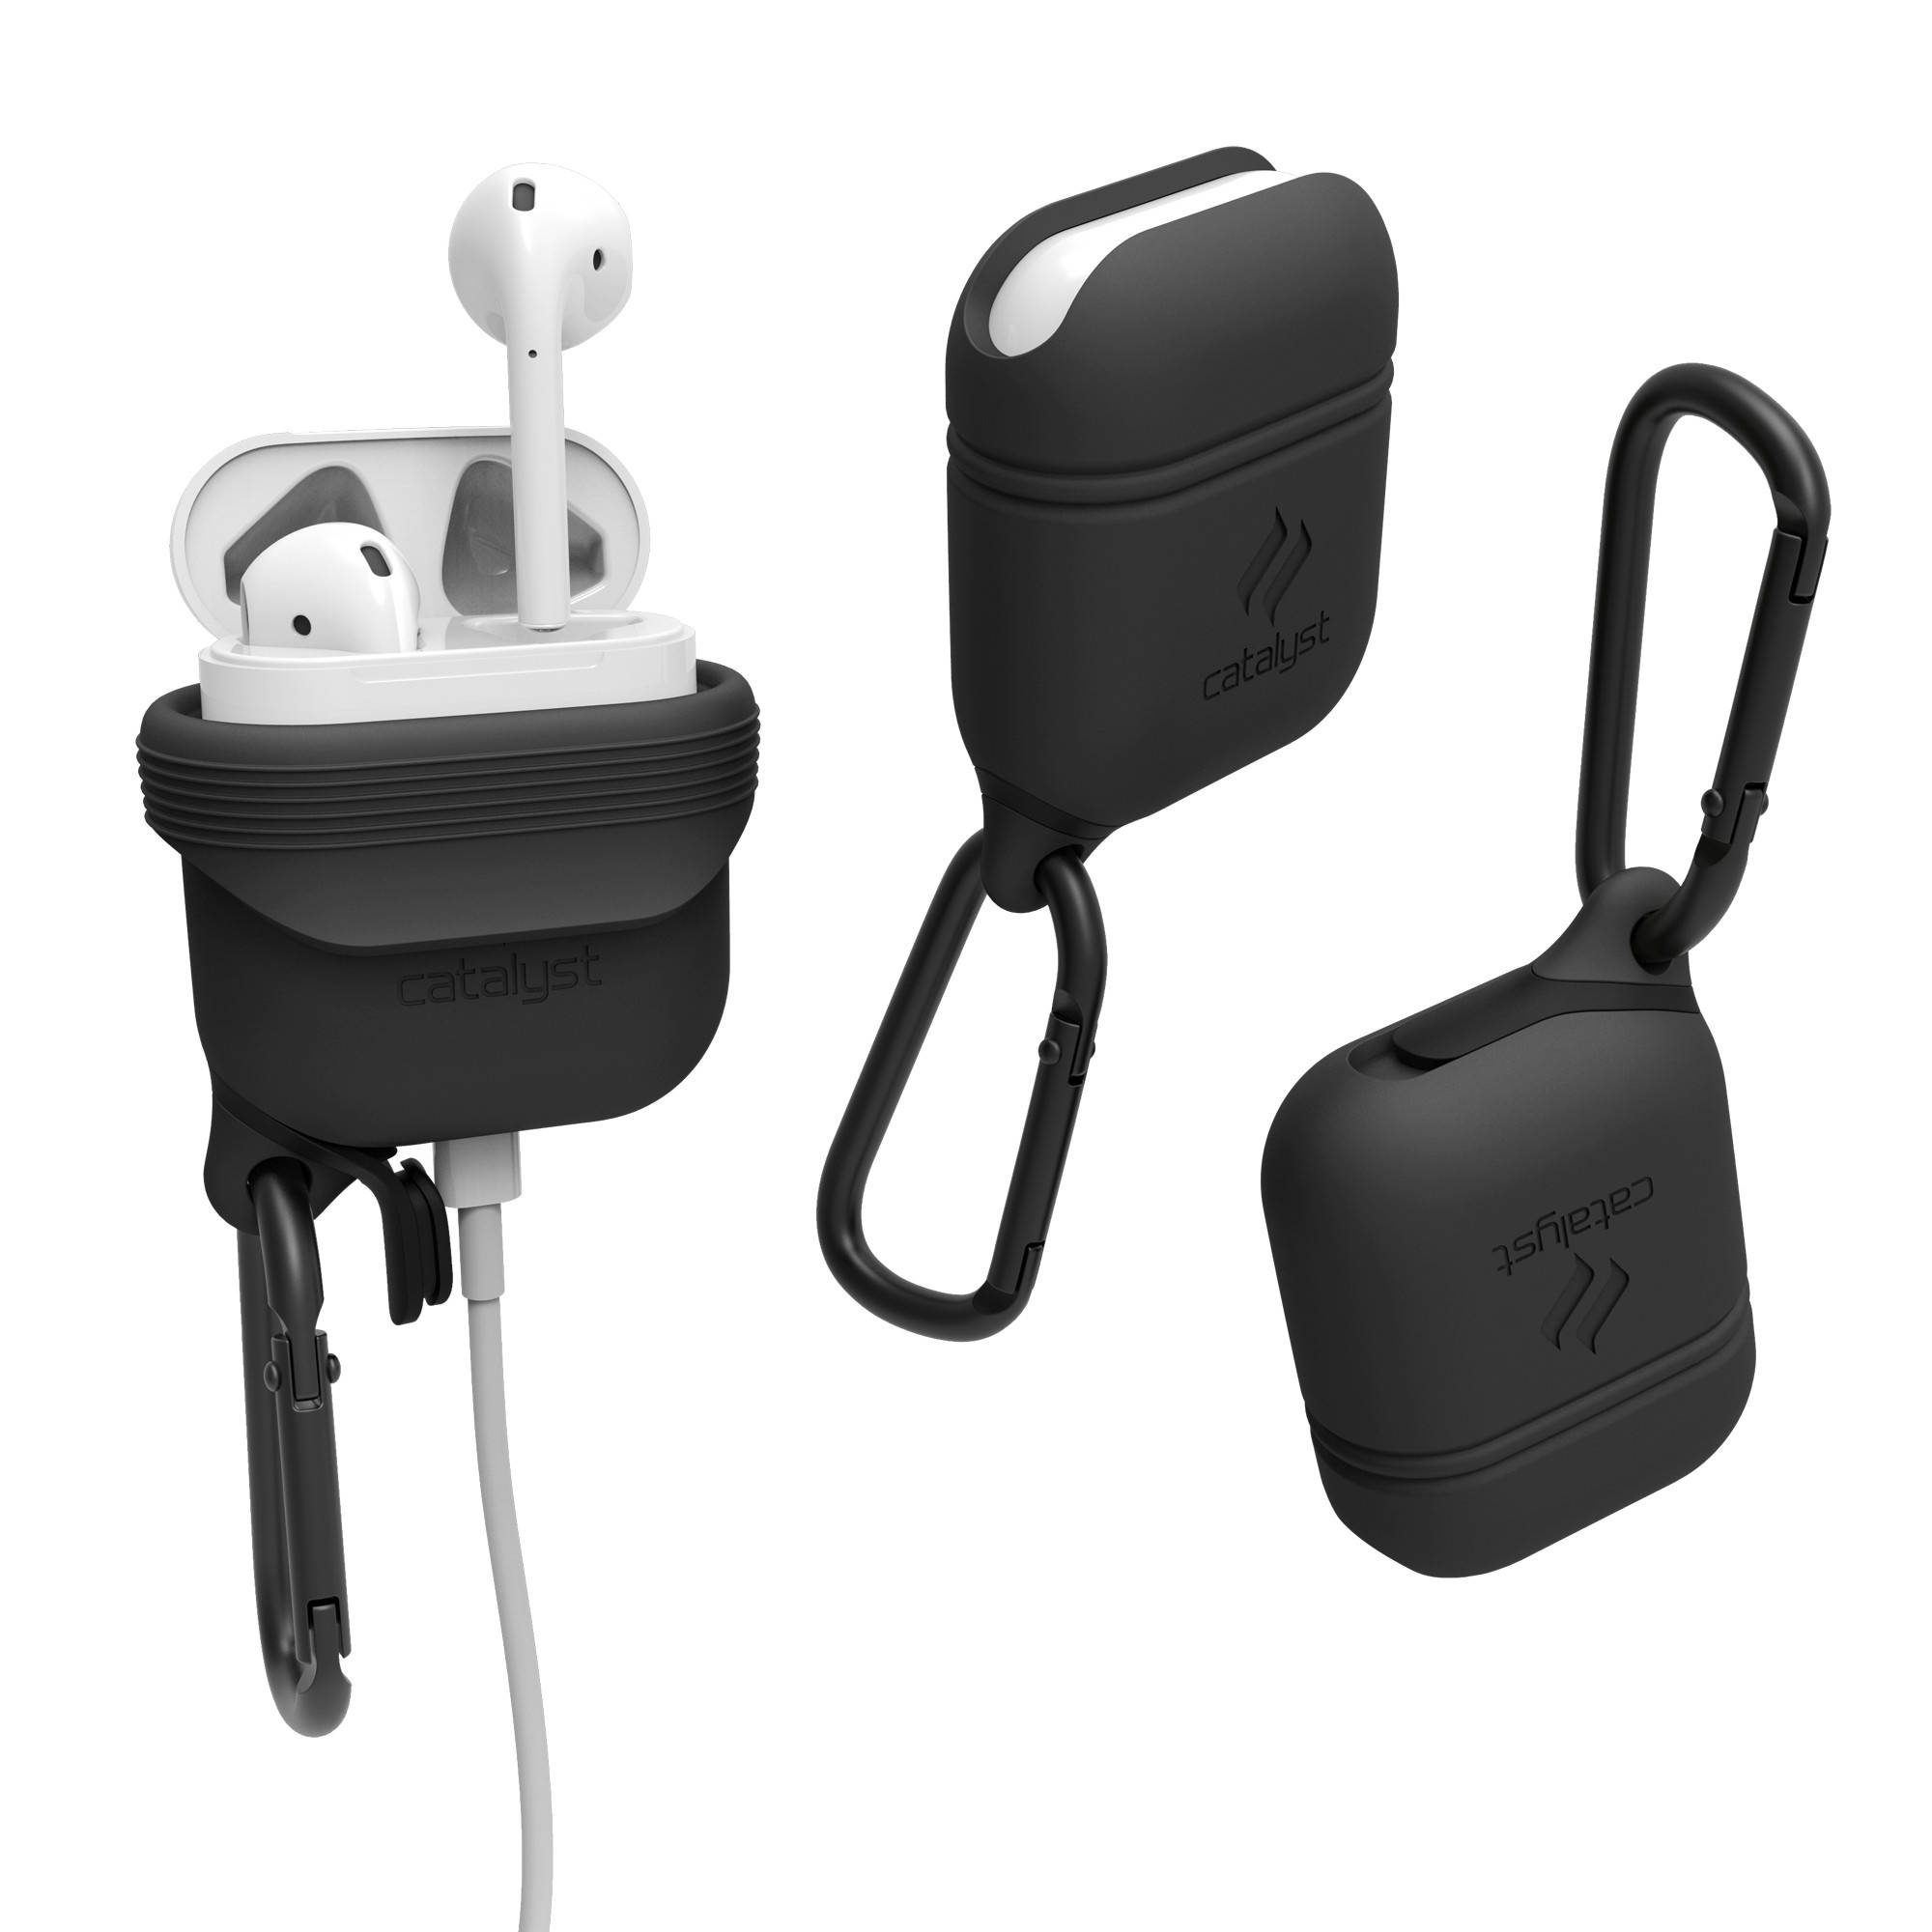 Catalyst Case for Apple AirPods (Slate Gray)